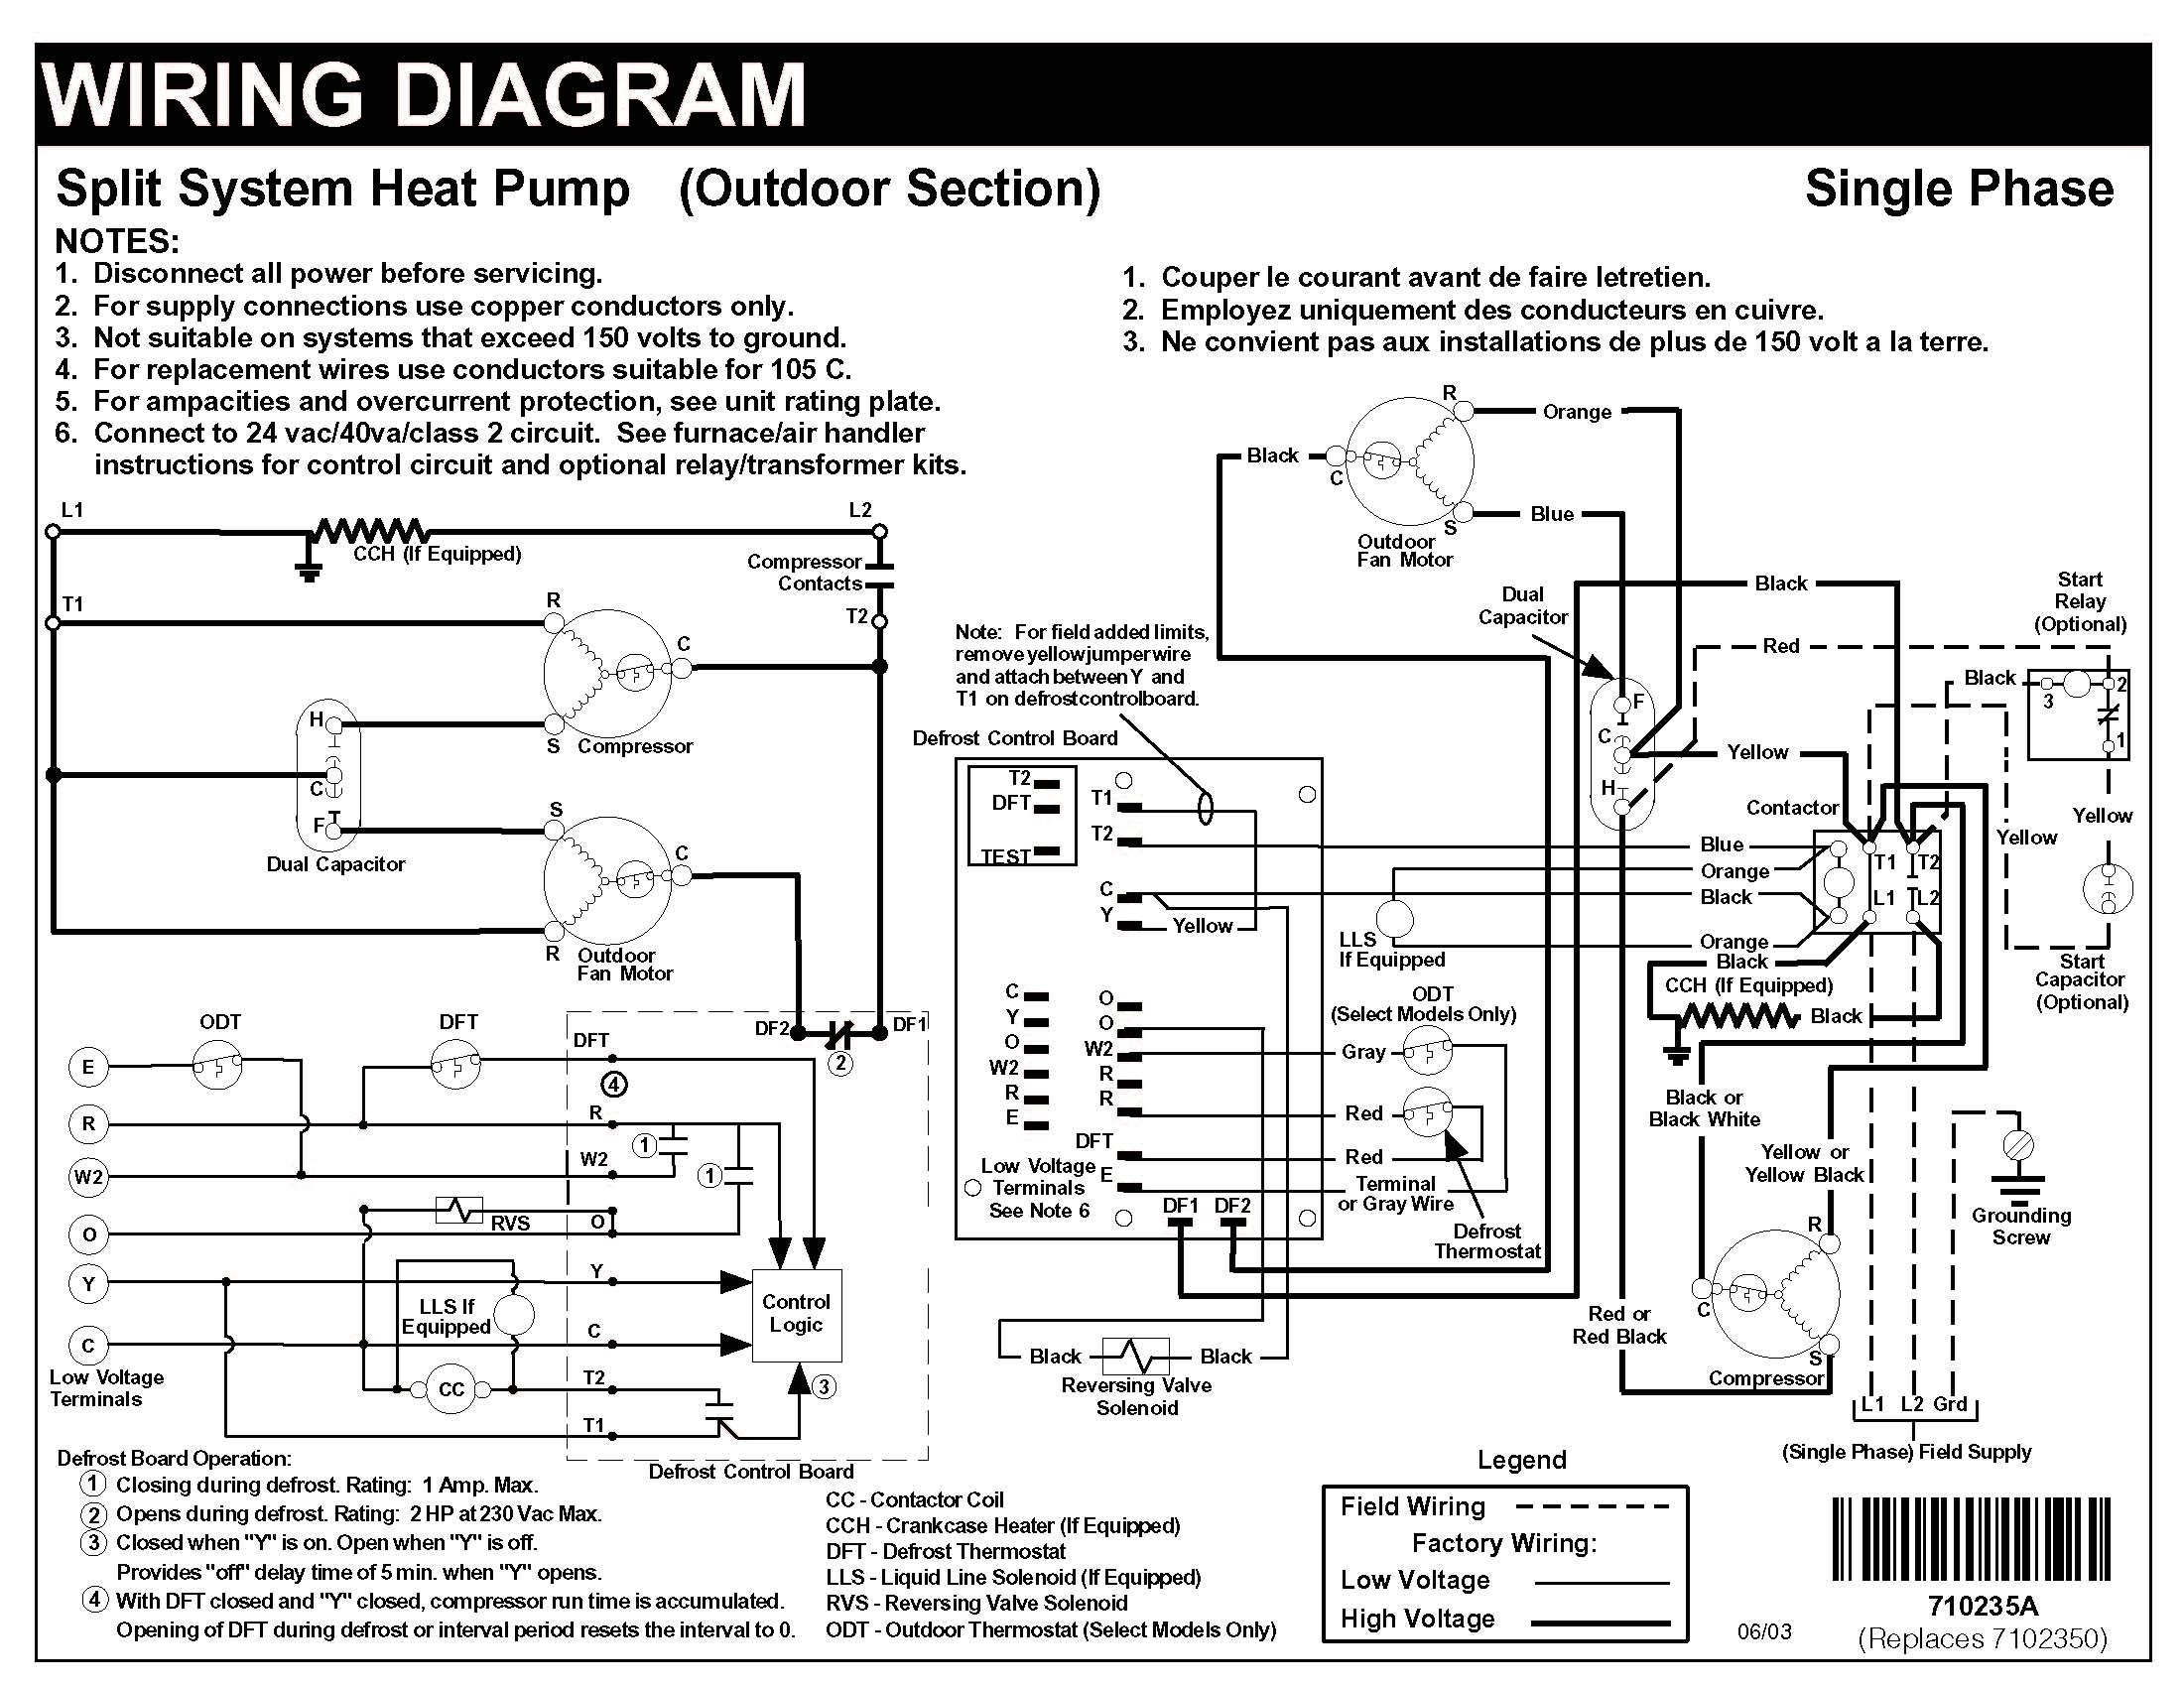 e08d295e6be2ee8be1bef44ac29add79 trane heat pump wiring diagram efcaviation com Trane Thermostat Wiring at alyssarenee.co